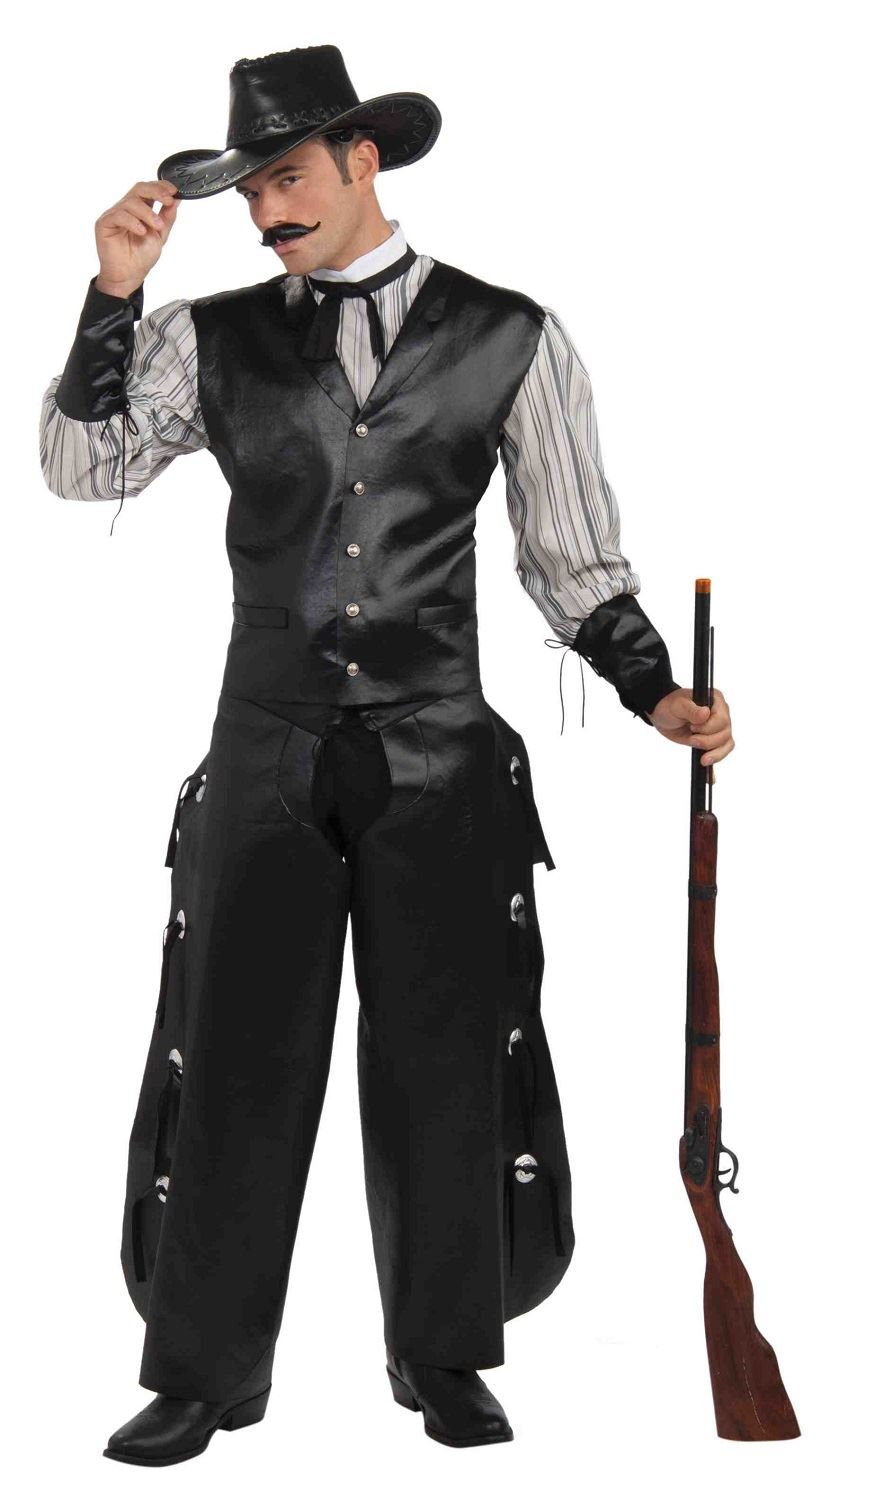 Adult West Rogue Gambler Men Cowboy Costume | $46.99 | The ...